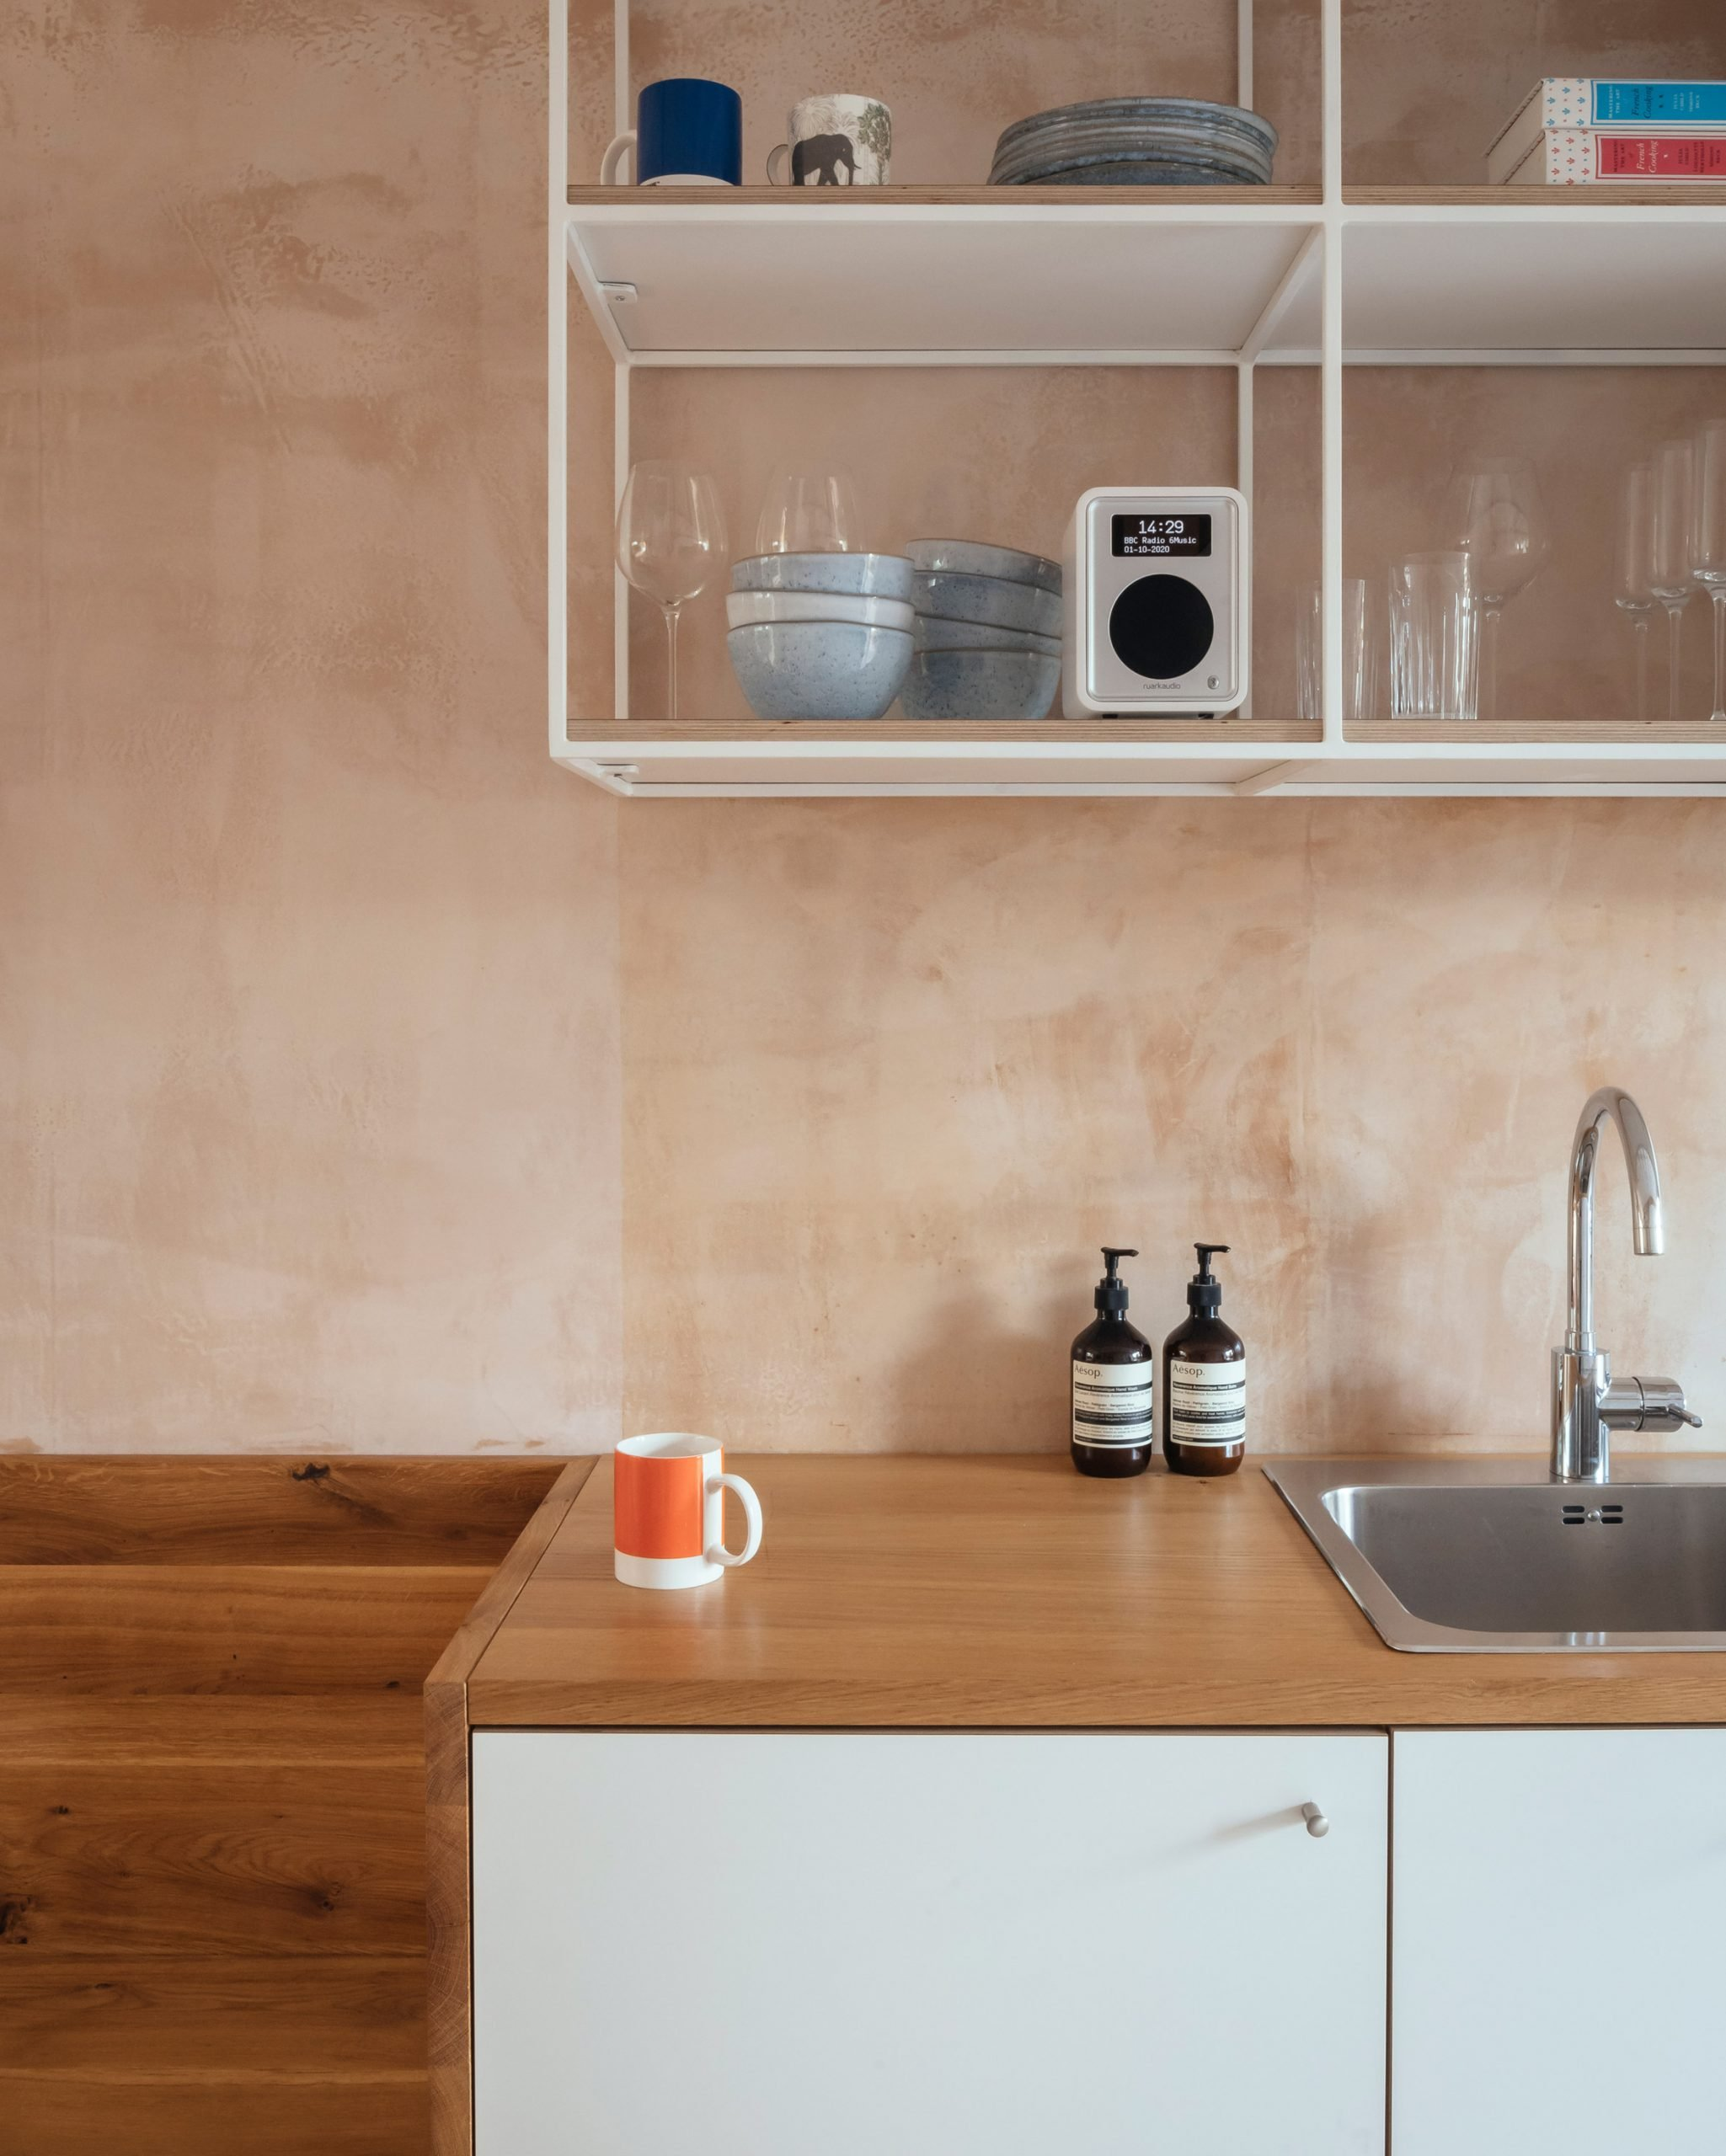 Kitchen sink in Council House Renovation